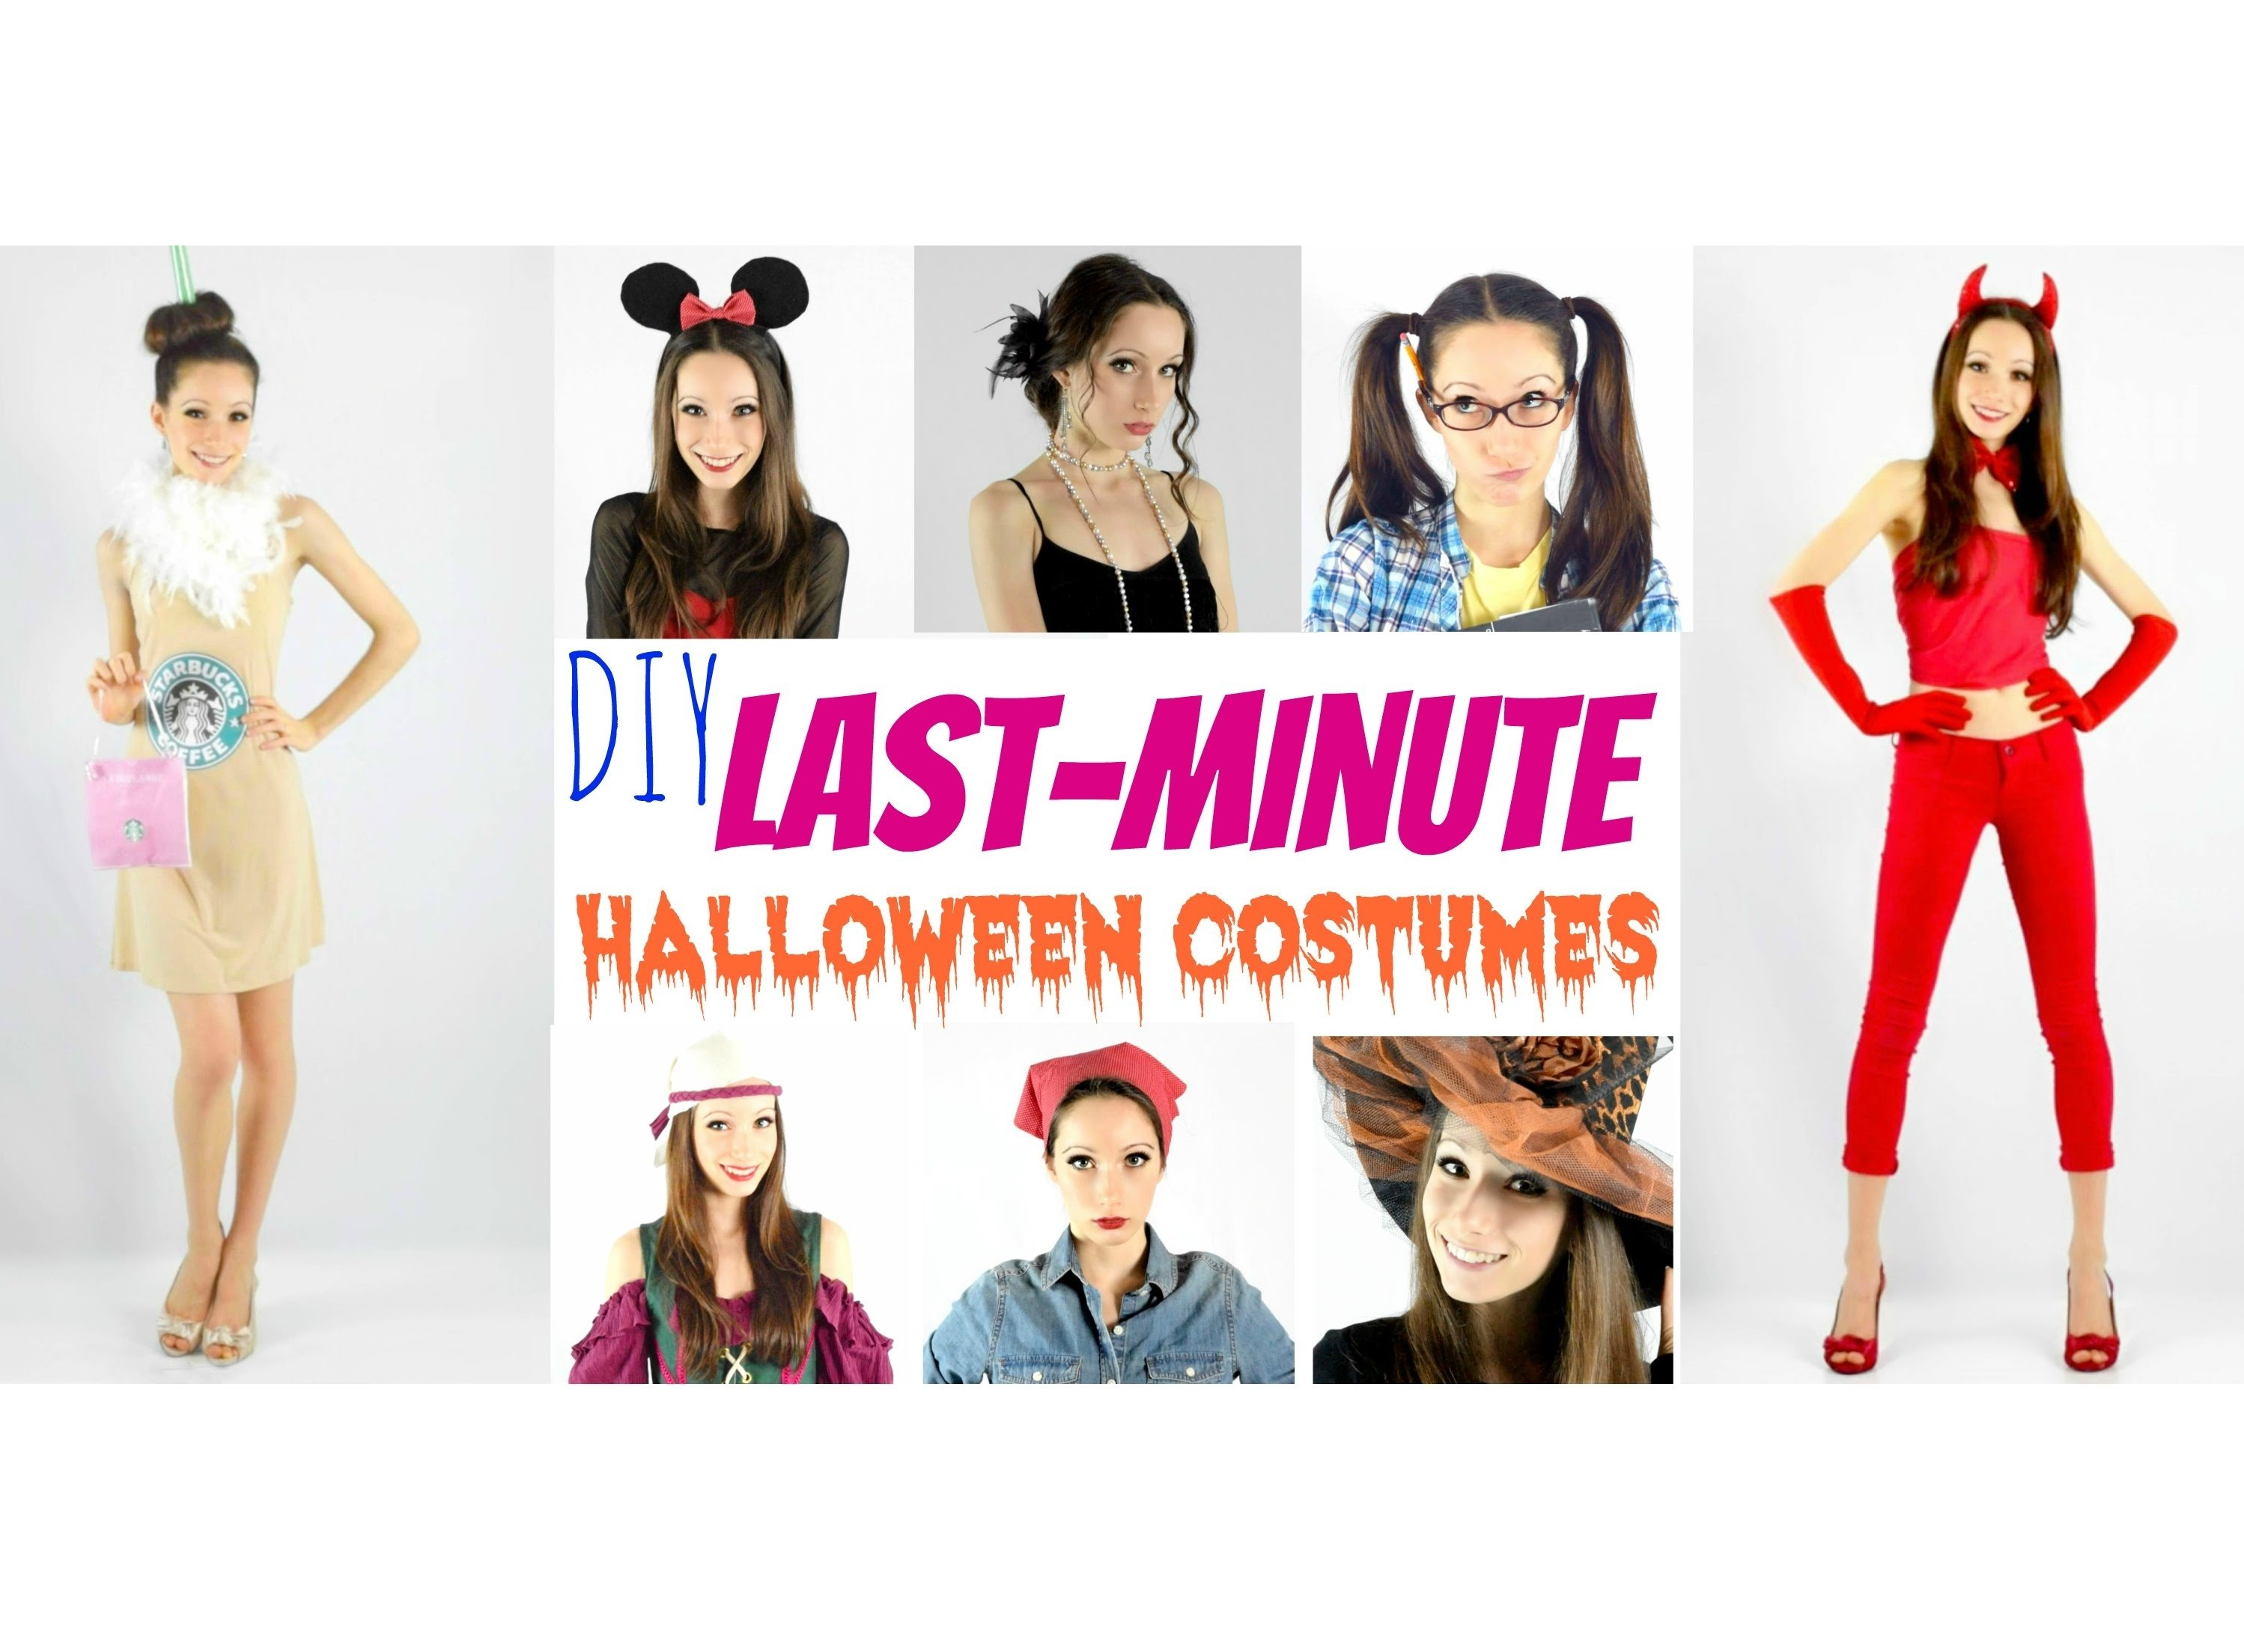 10 Attractive Good Last Minute Halloween Costume Ideas 15 diy halloween costumes 6